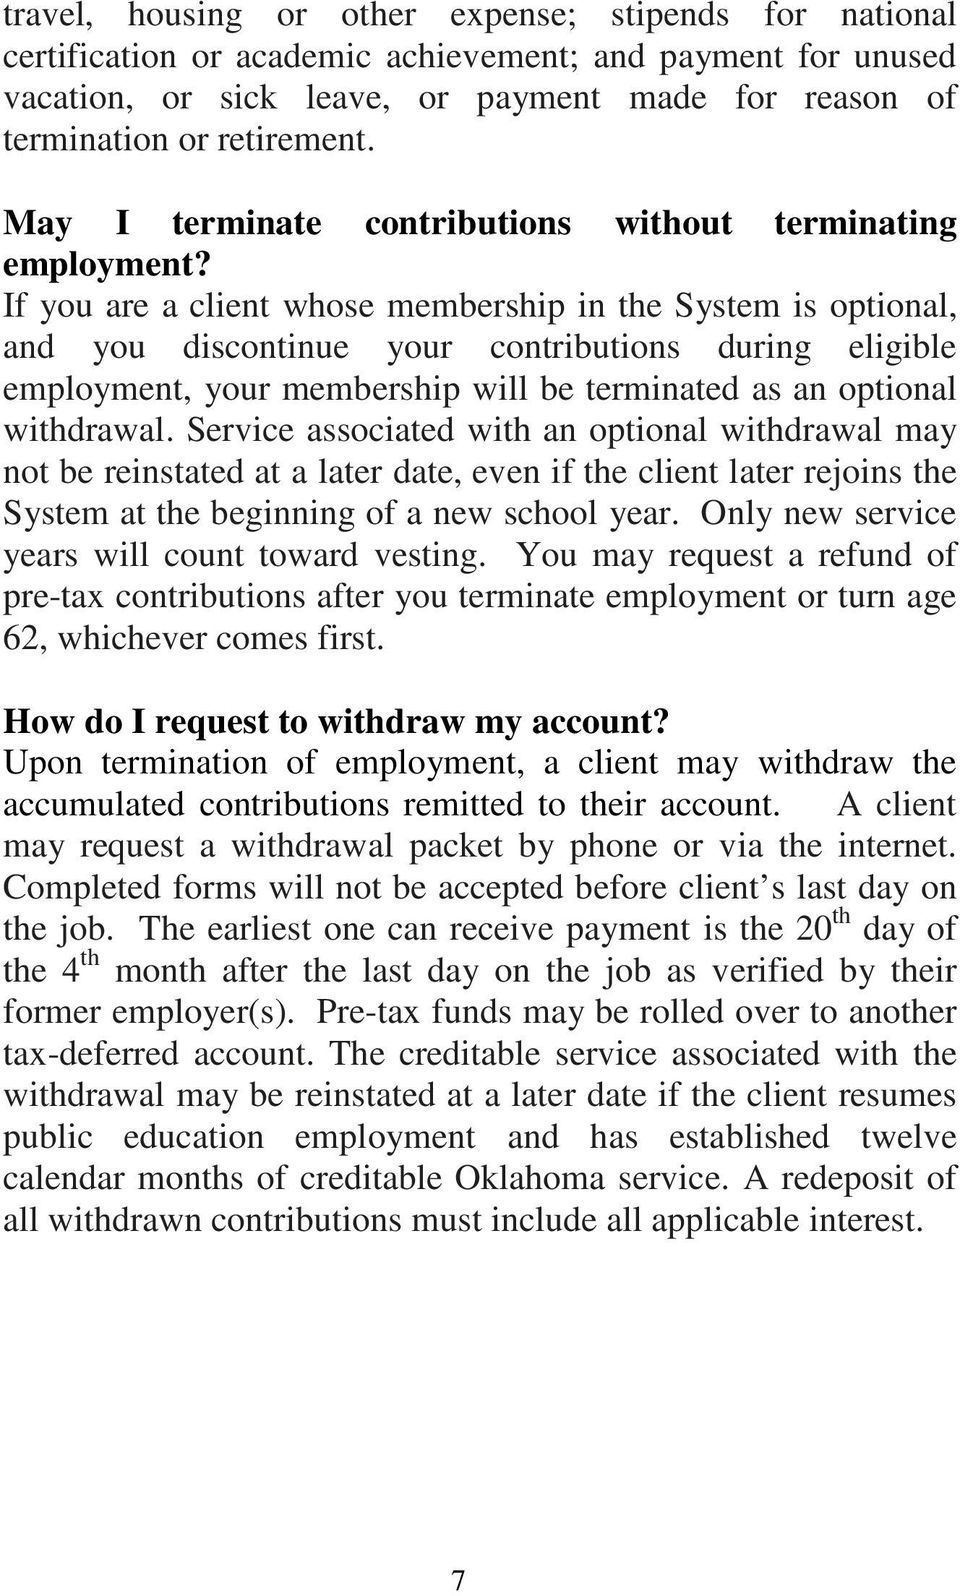 If you are a client whose membership in the System is optional, and you discontinue your contributions during eligible employment, your membership will be terminated as an optional withdrawal.